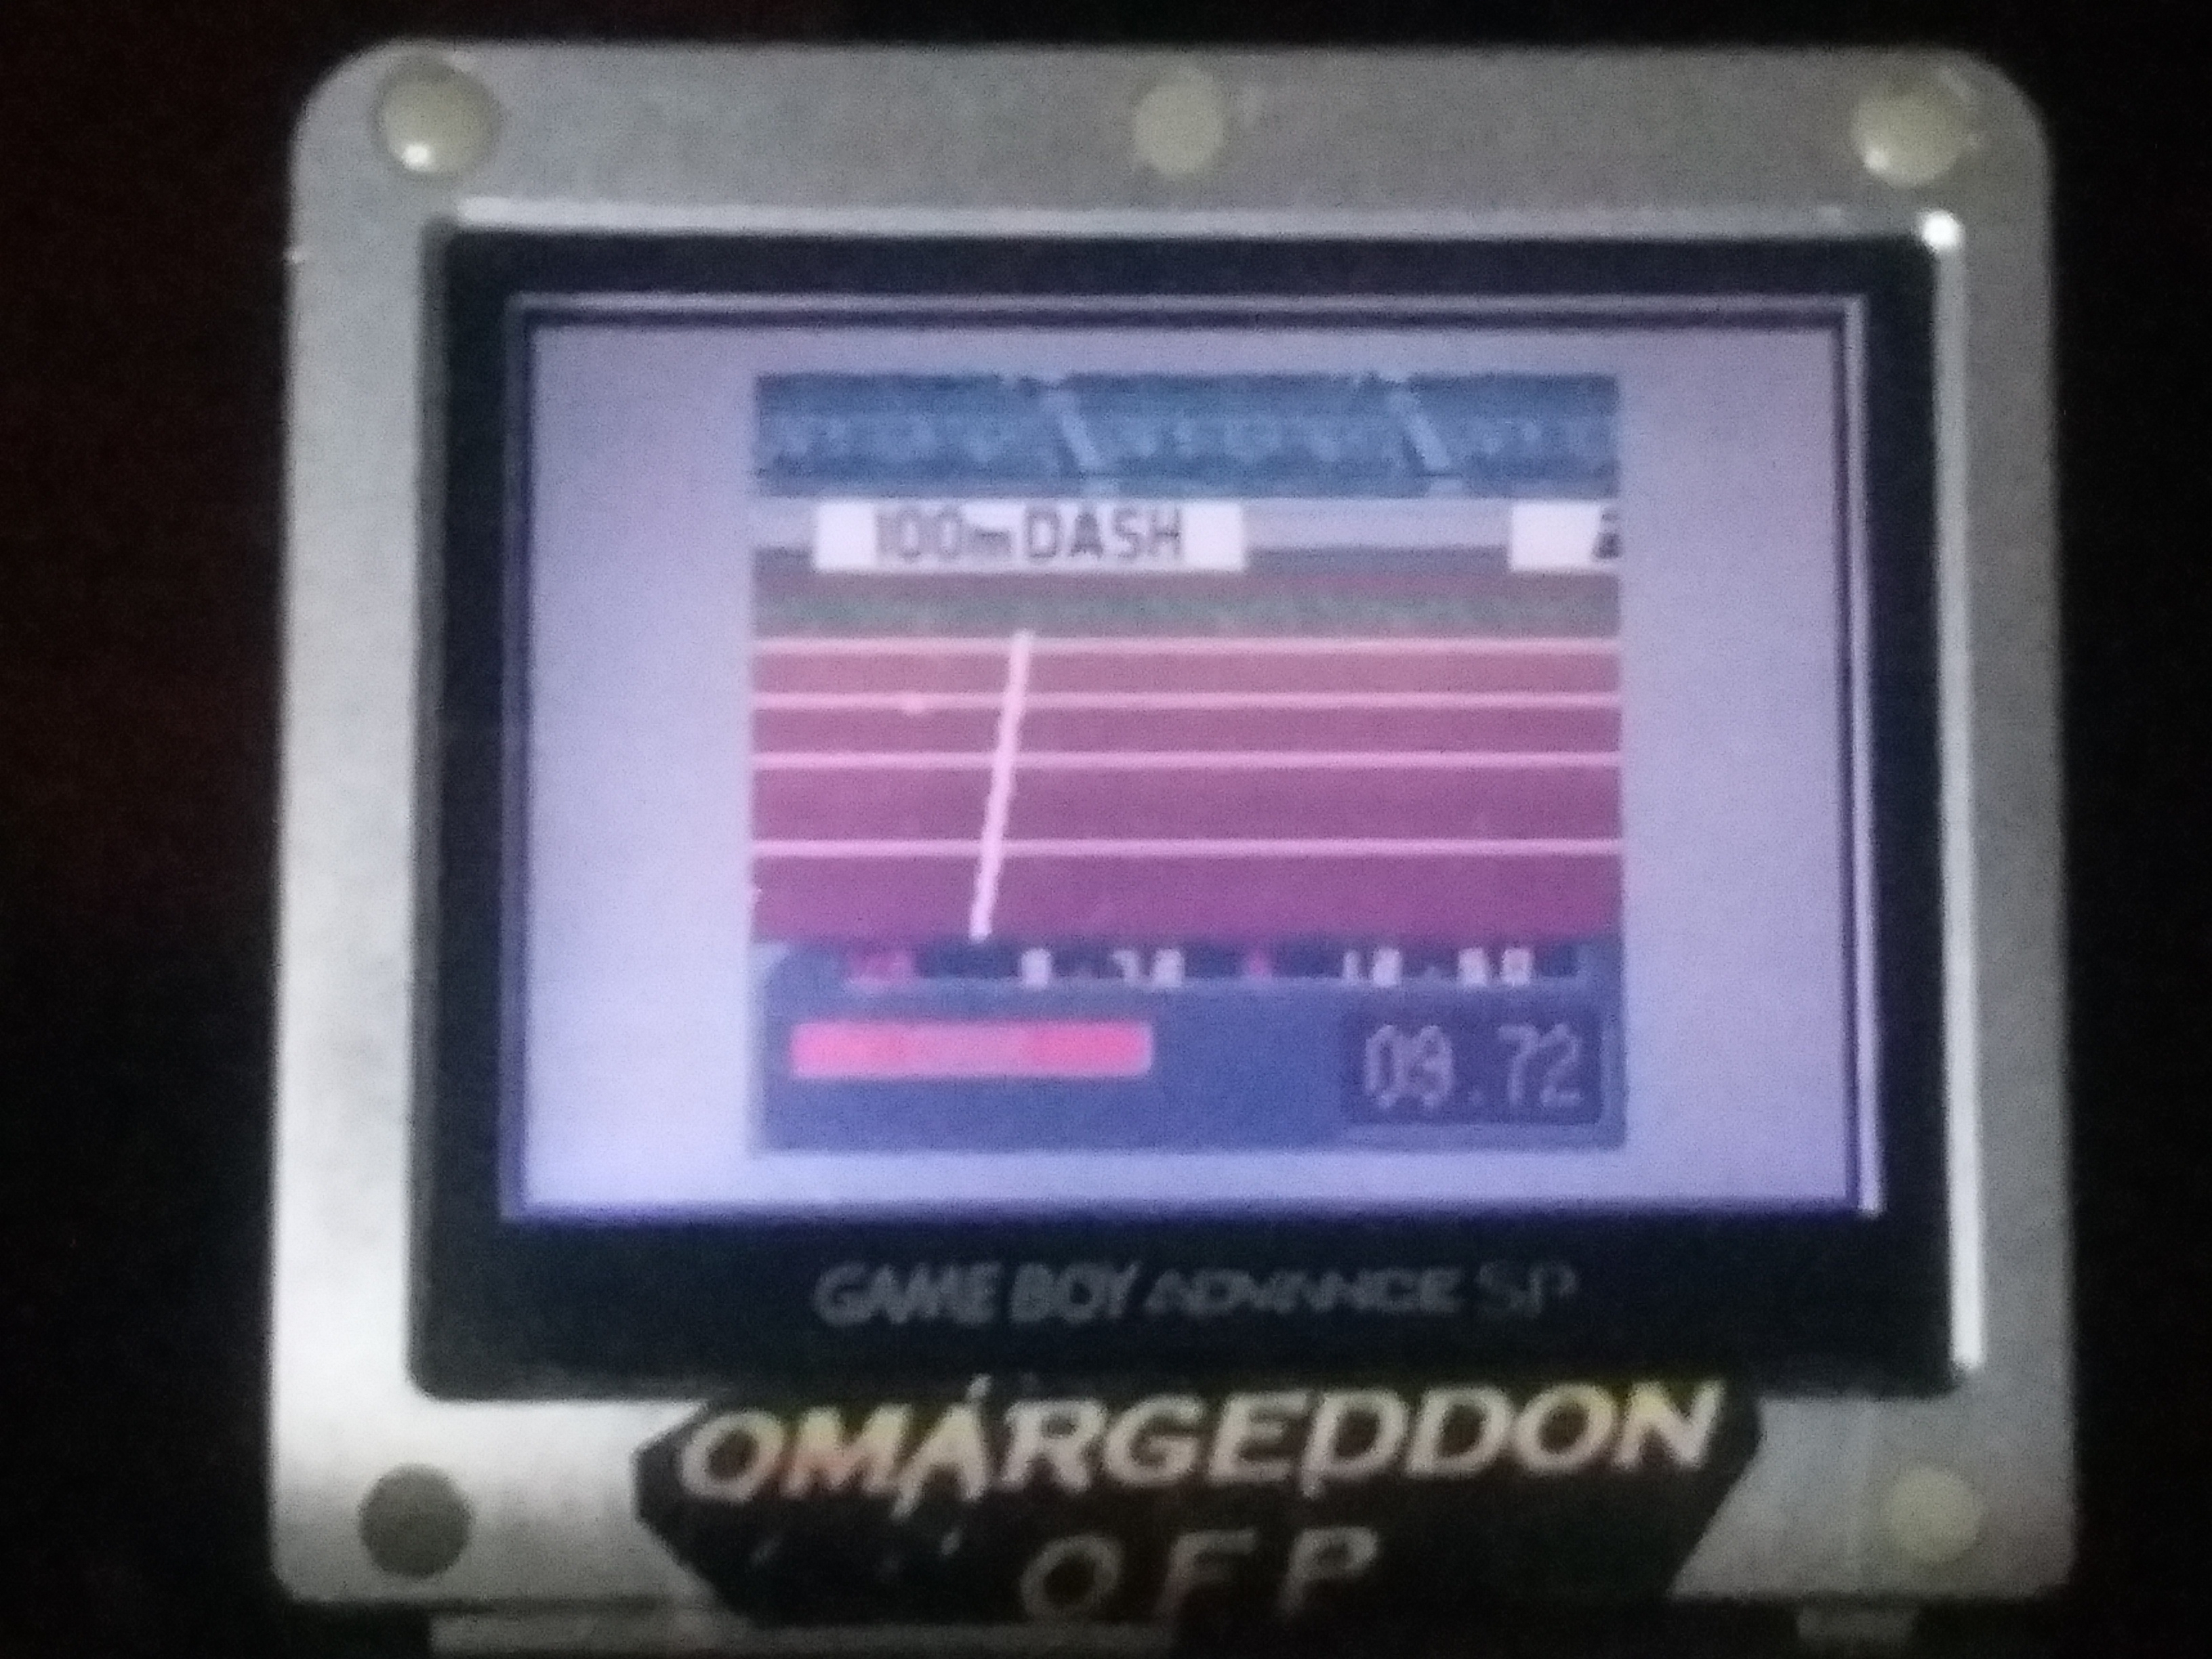 omargeddon: ESPN International Track & Field: 100m Dash (Game Boy Color) 0:00:09.72 points on 2018-01-19 19:03:54